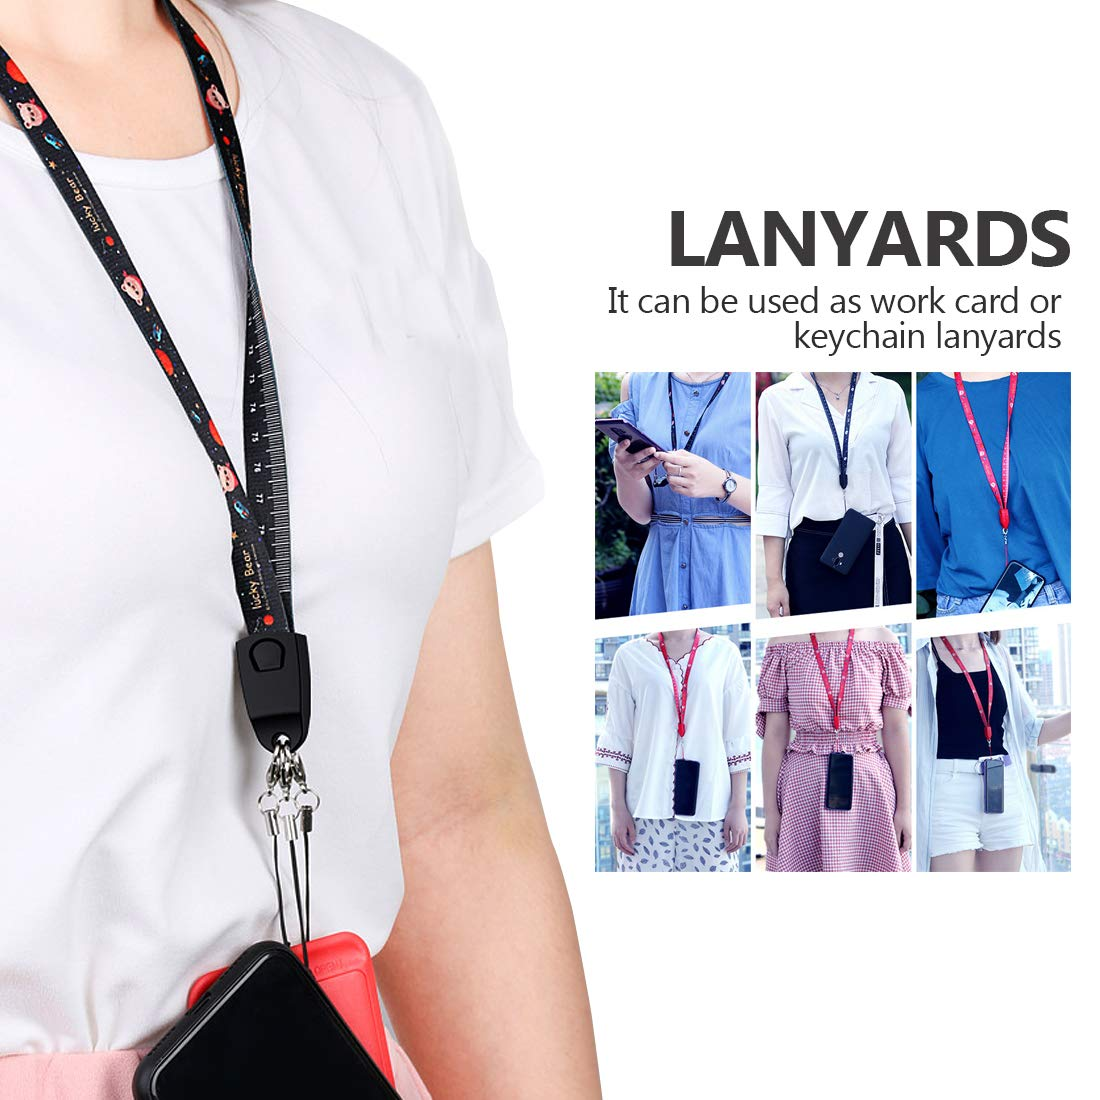 Cell Phone Lanyard Strap Micro USB Charging Cable, Houbox 33 5 inch Ruler  Lanyards Neck Charger Cord for Phone / Keys / Keychain / Work Card